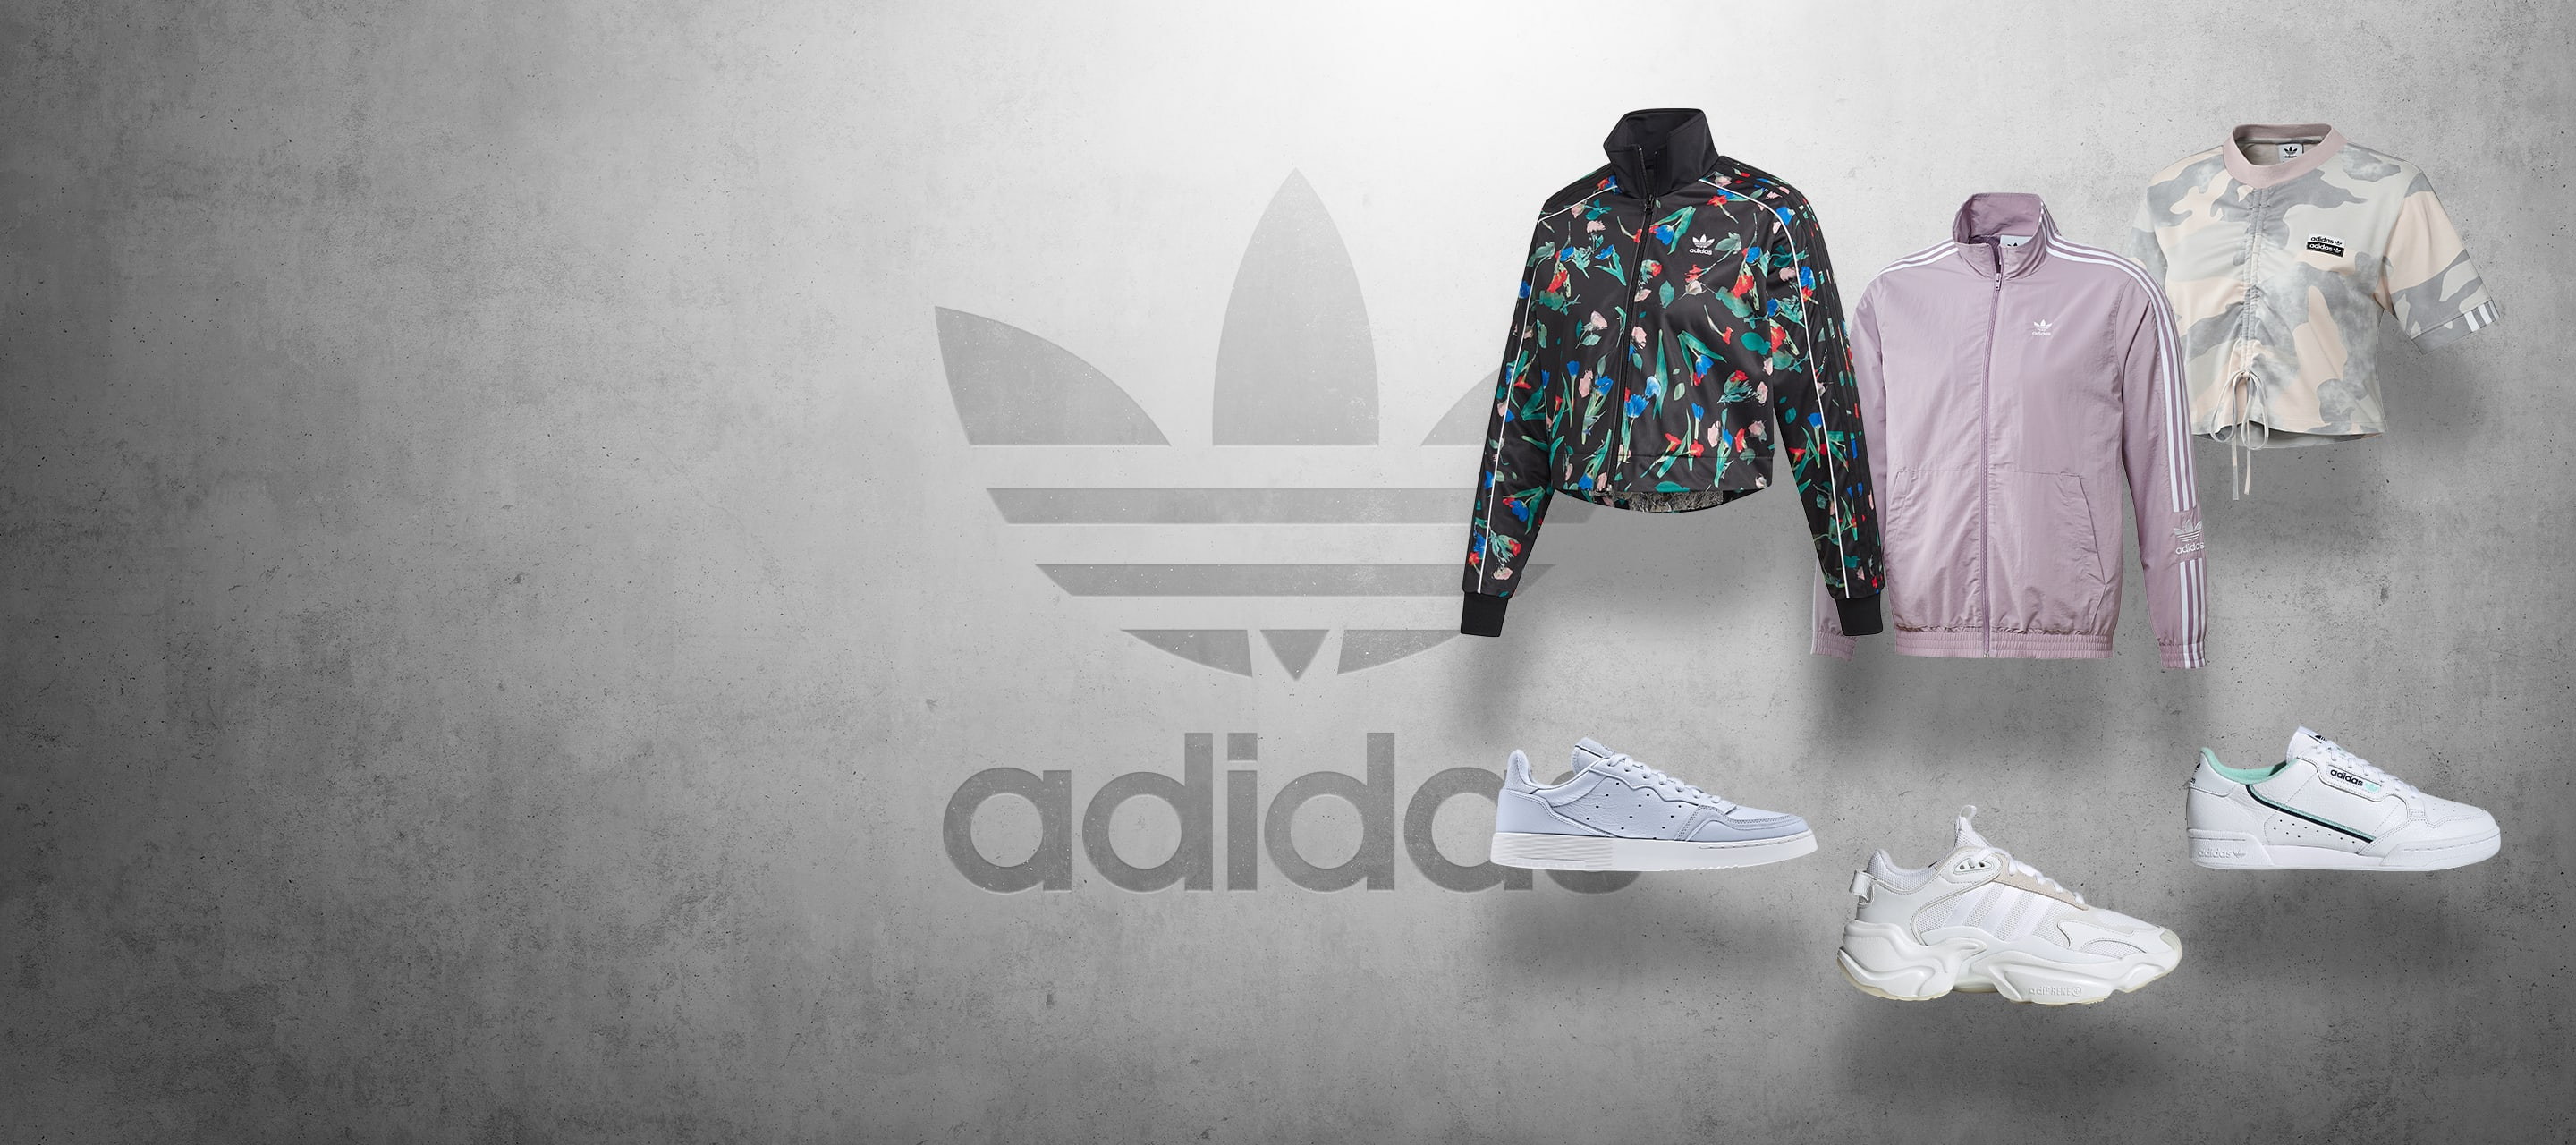 Rea | adidas SE | Officiell outlet